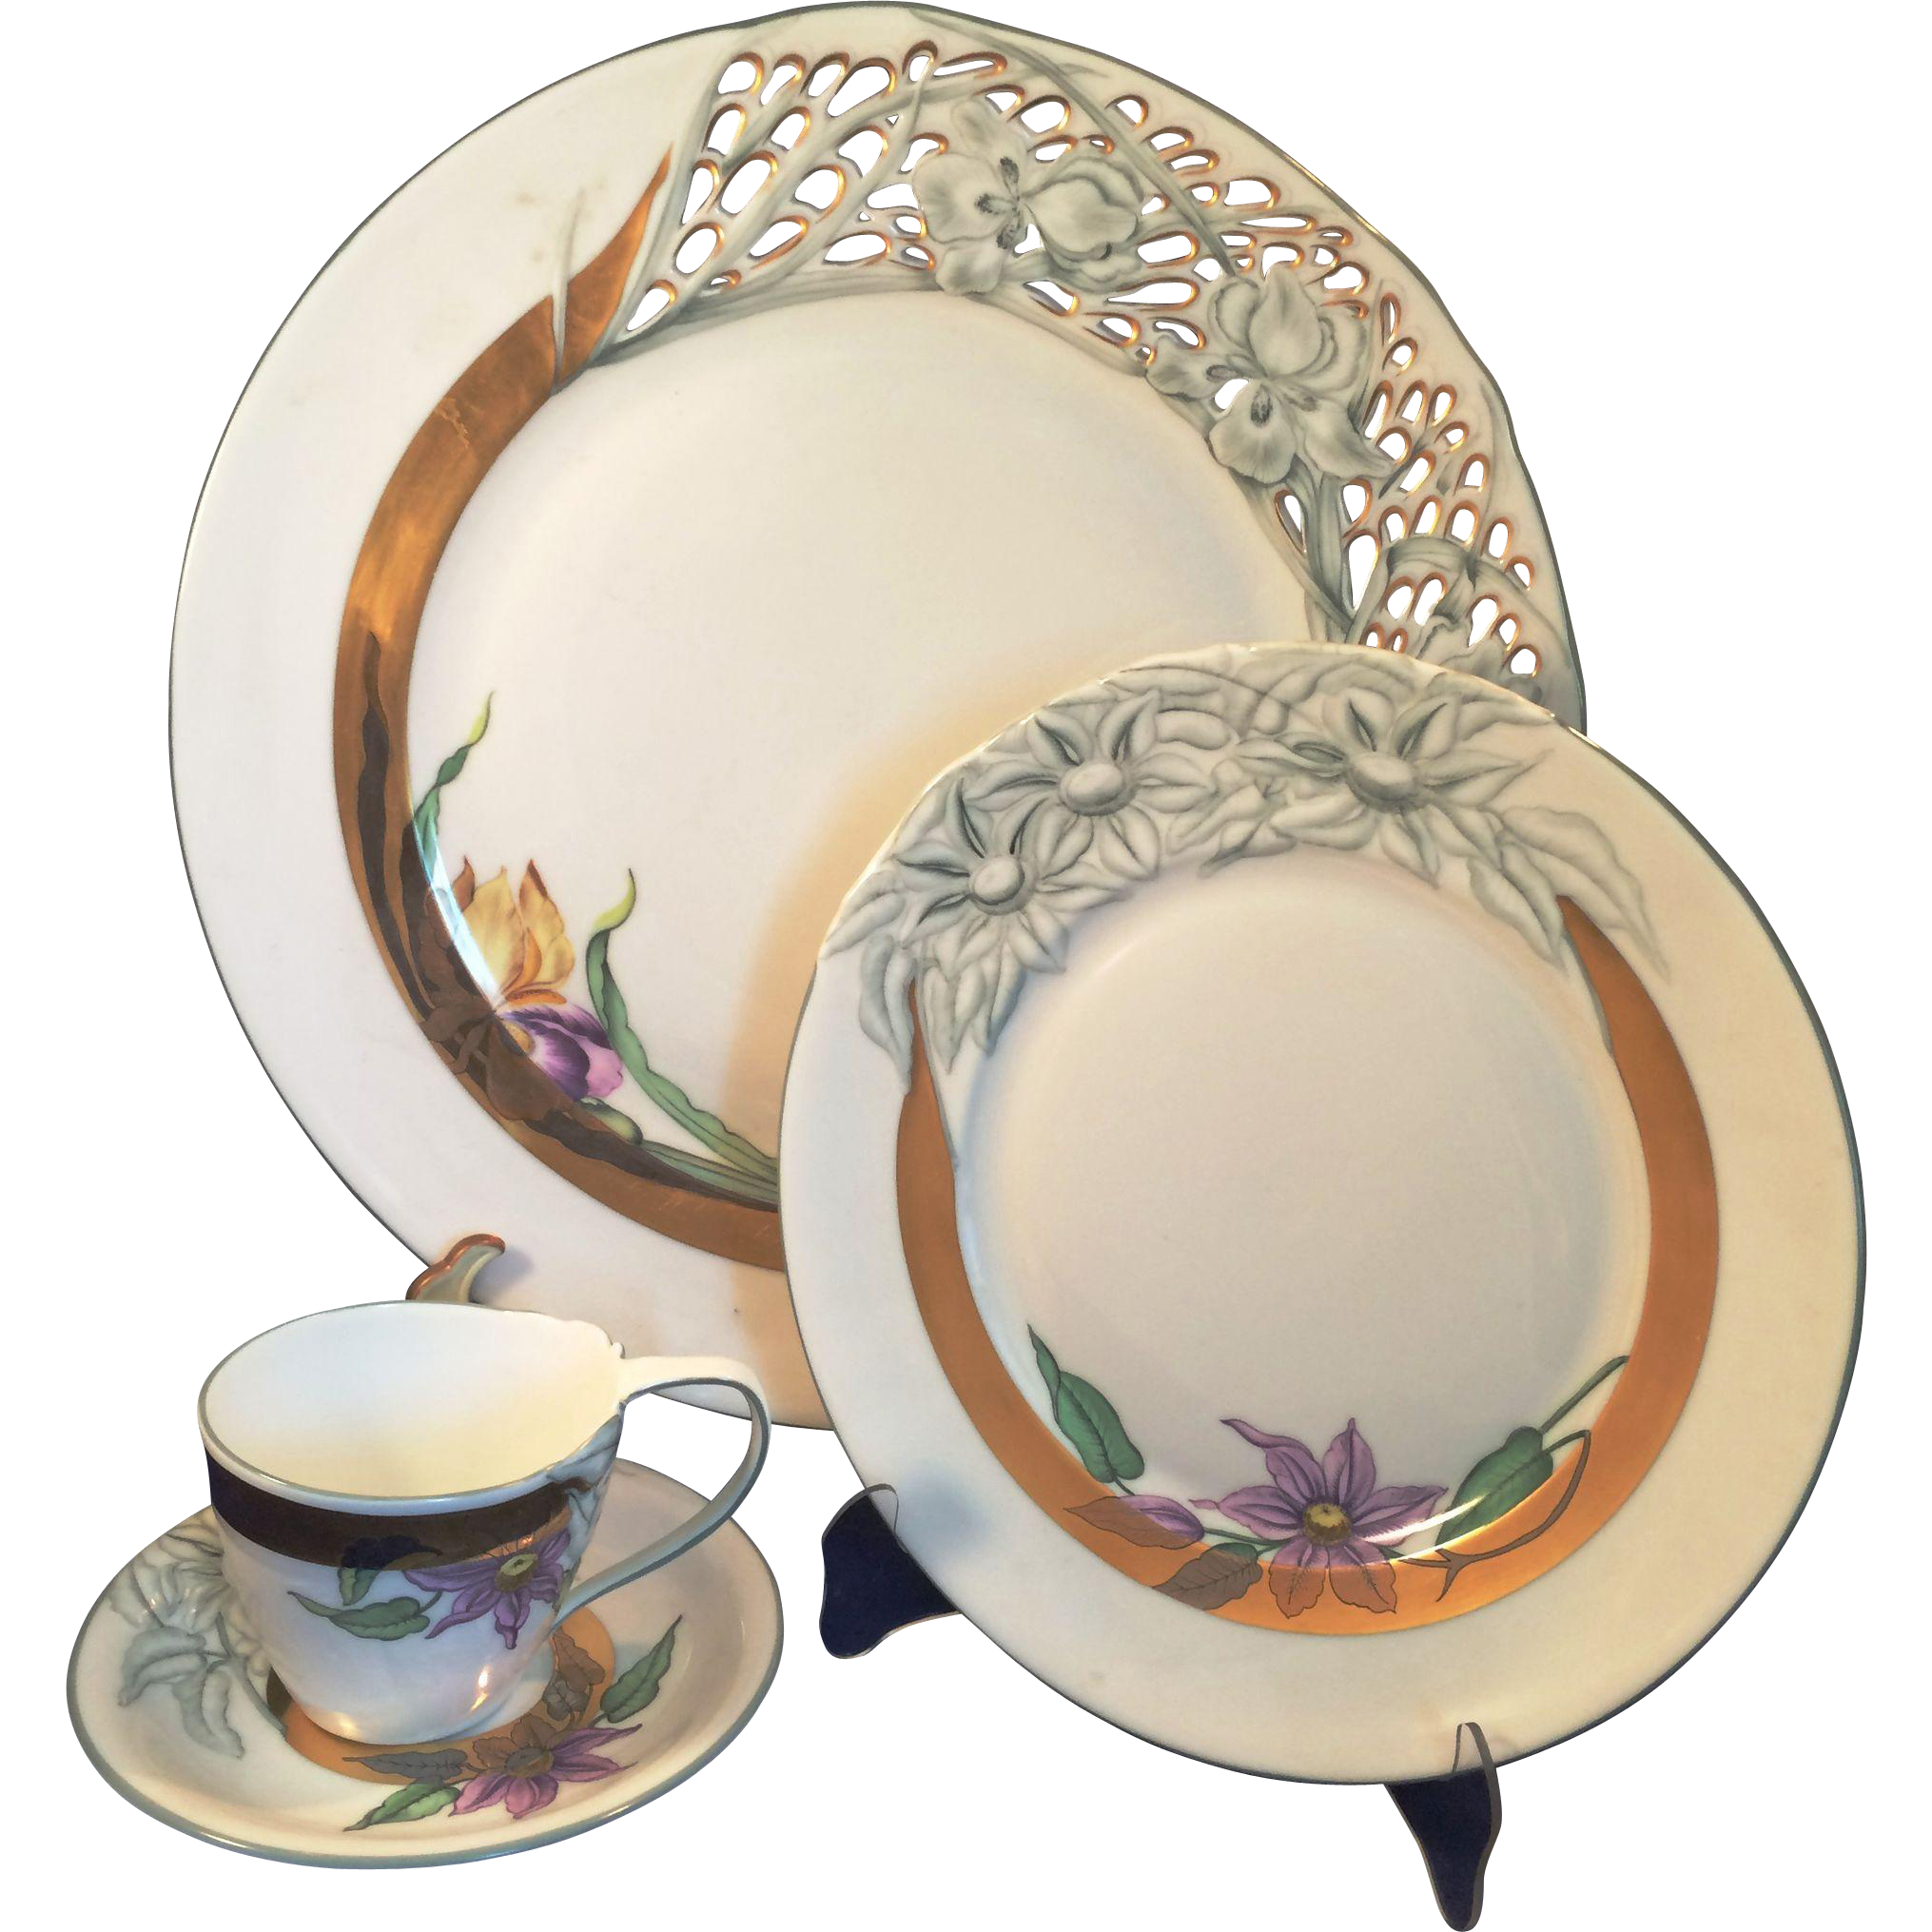 Herend Hungary Rare 4 piece set Romance Rete floral and openwork China special order